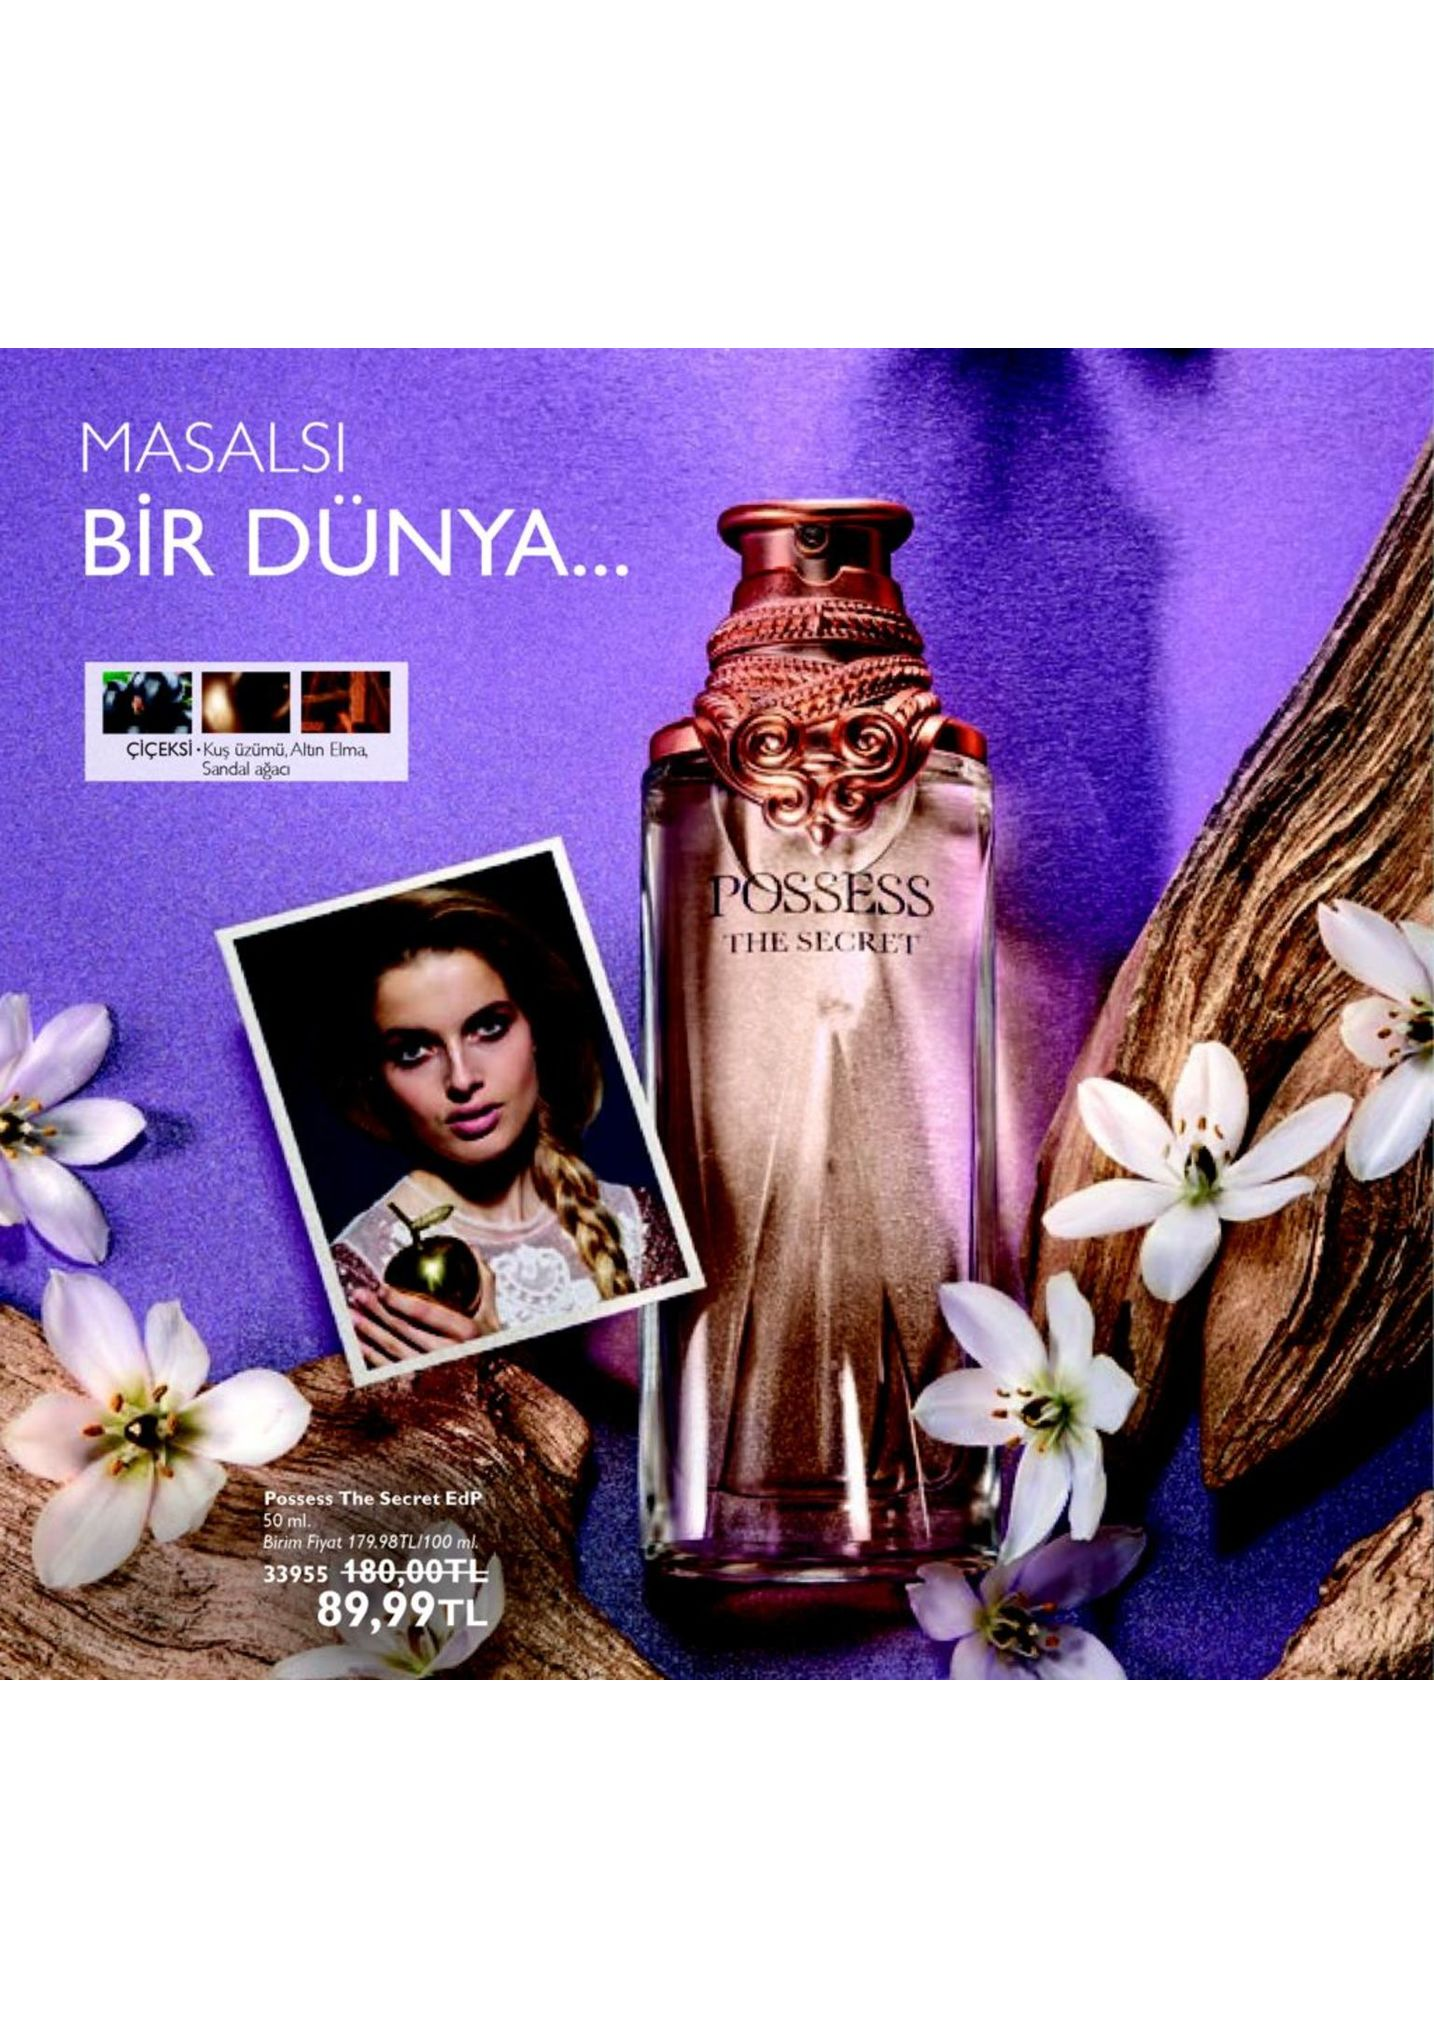 masals bir dünya çiçeksi. kuş üzümü, altin elma, ssess the secret possess the secret edp 50 ml birim fiyat 179.98tl/100 m 89,99tl